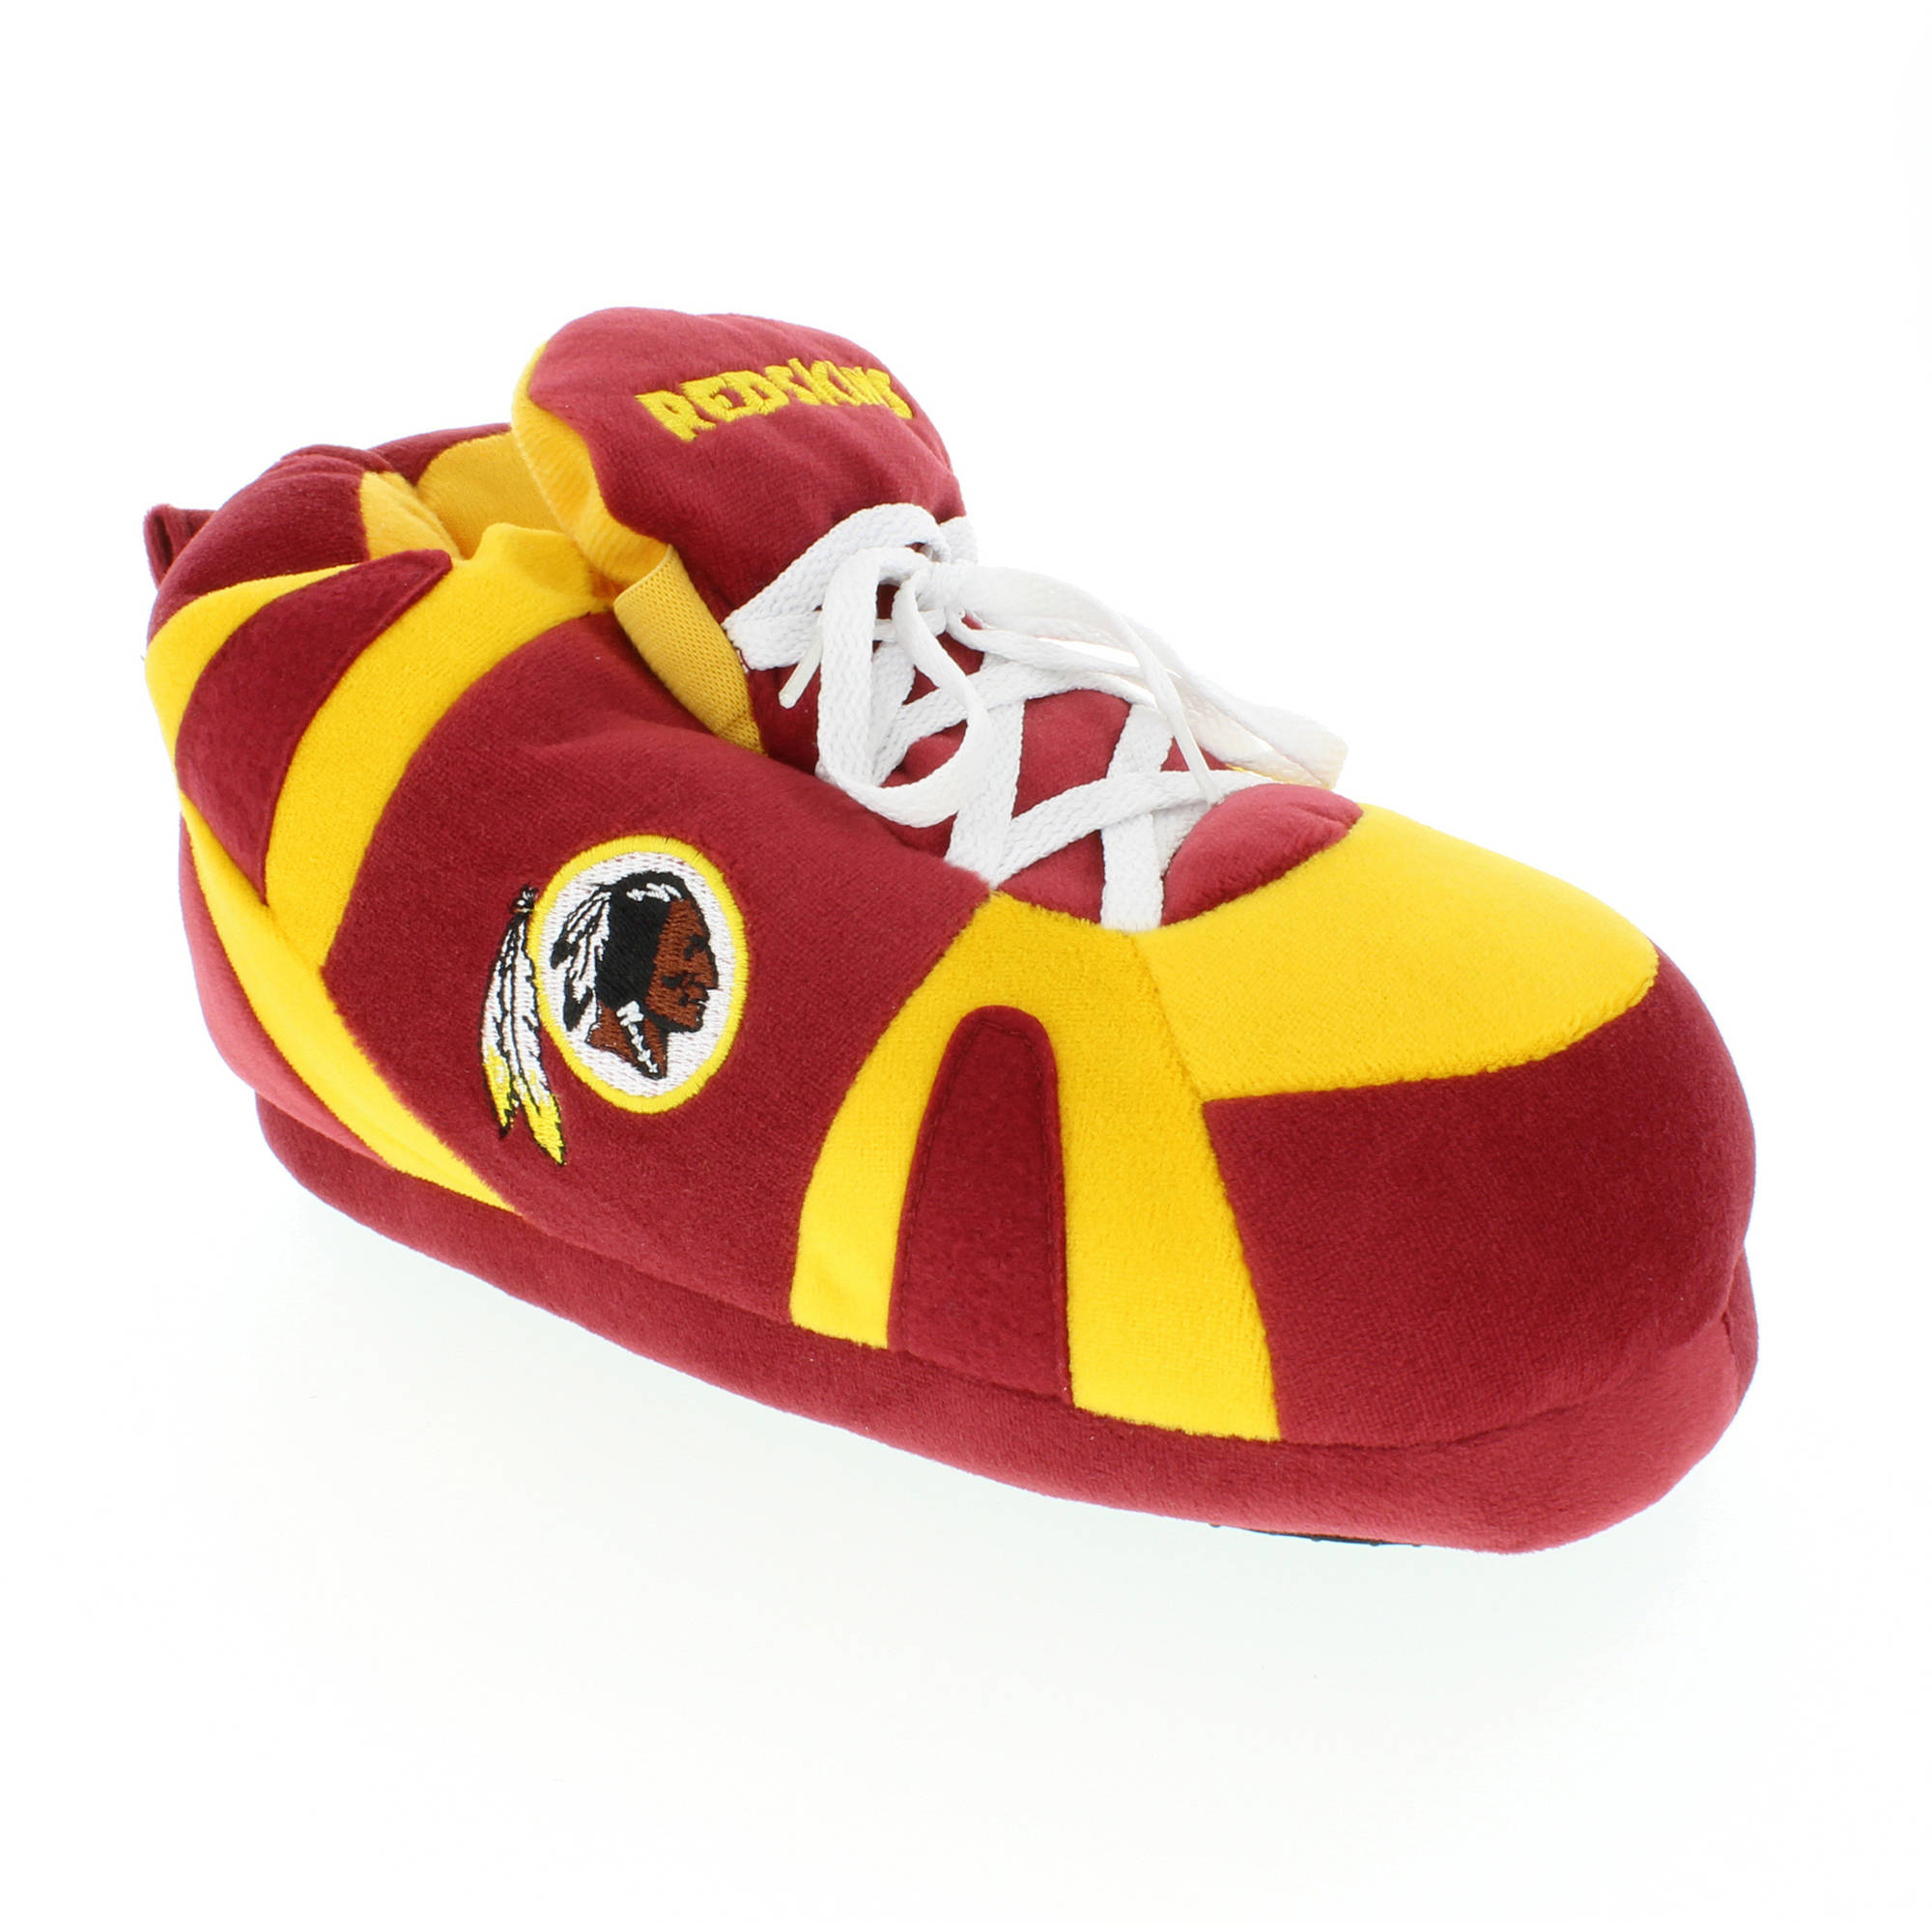 Comfy Feet - NFL Washington Redskins Slipper